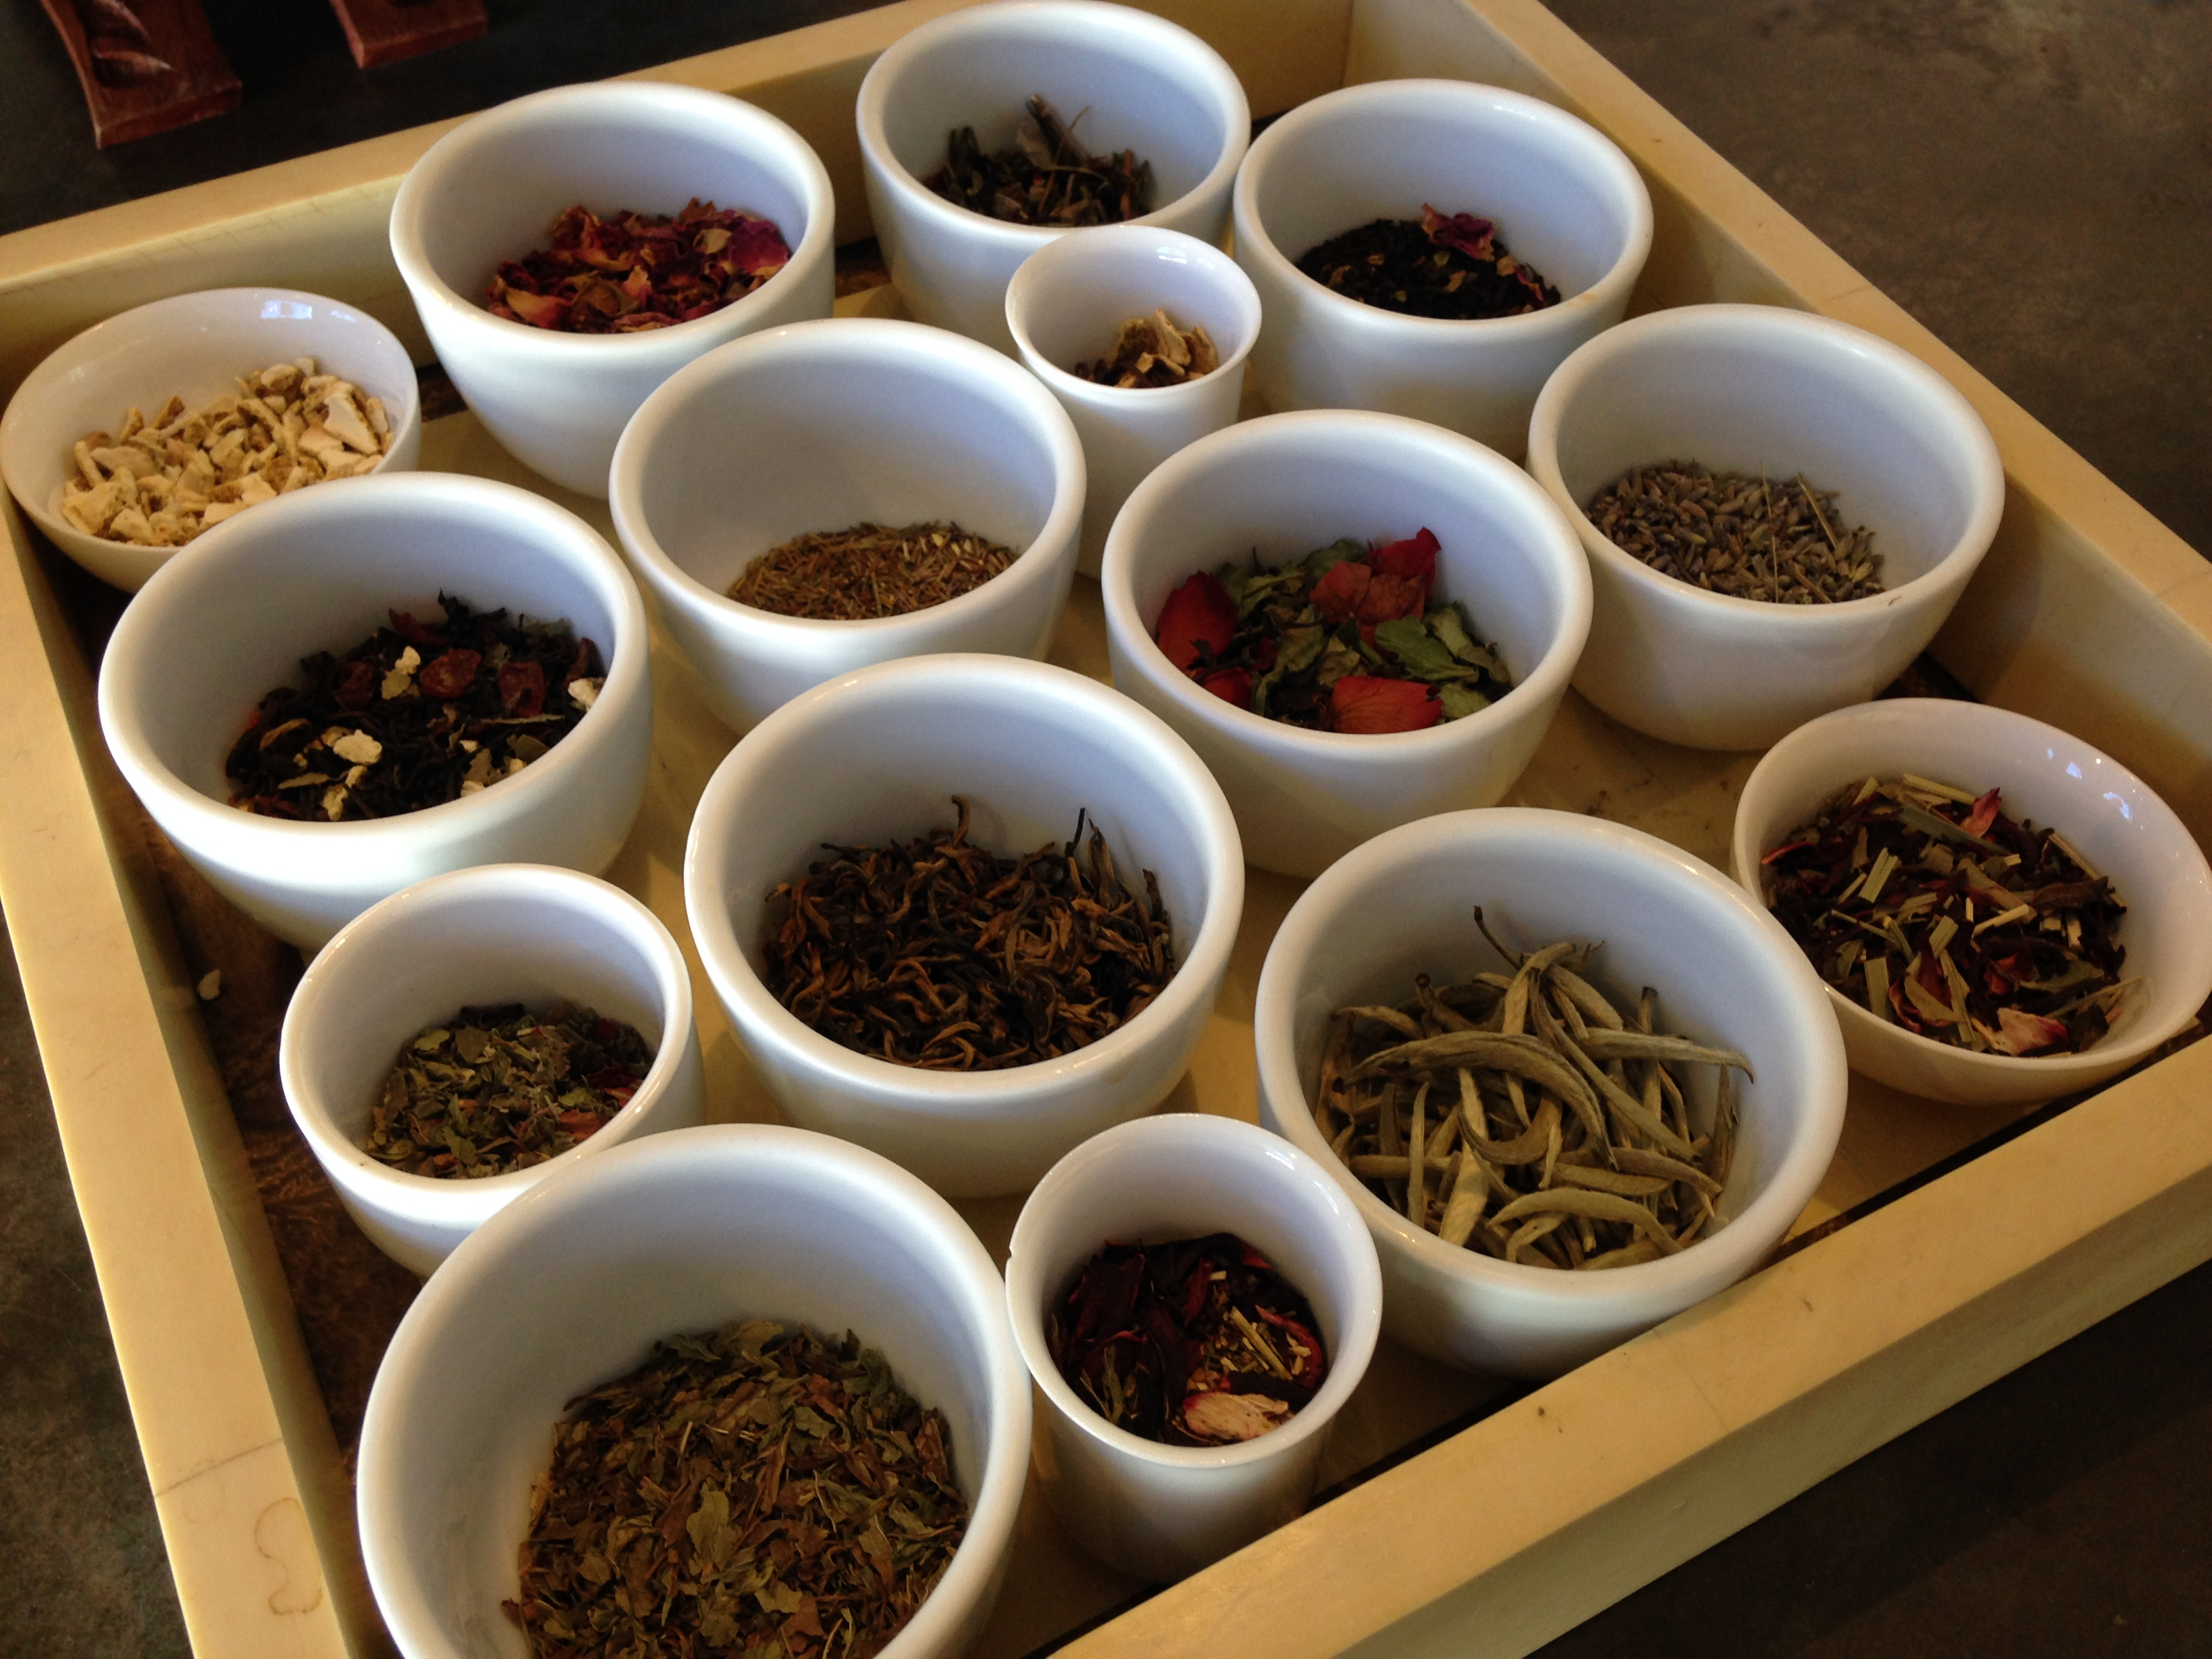 Loose leaf teas and tea blends, photo by Carrie Uffindell